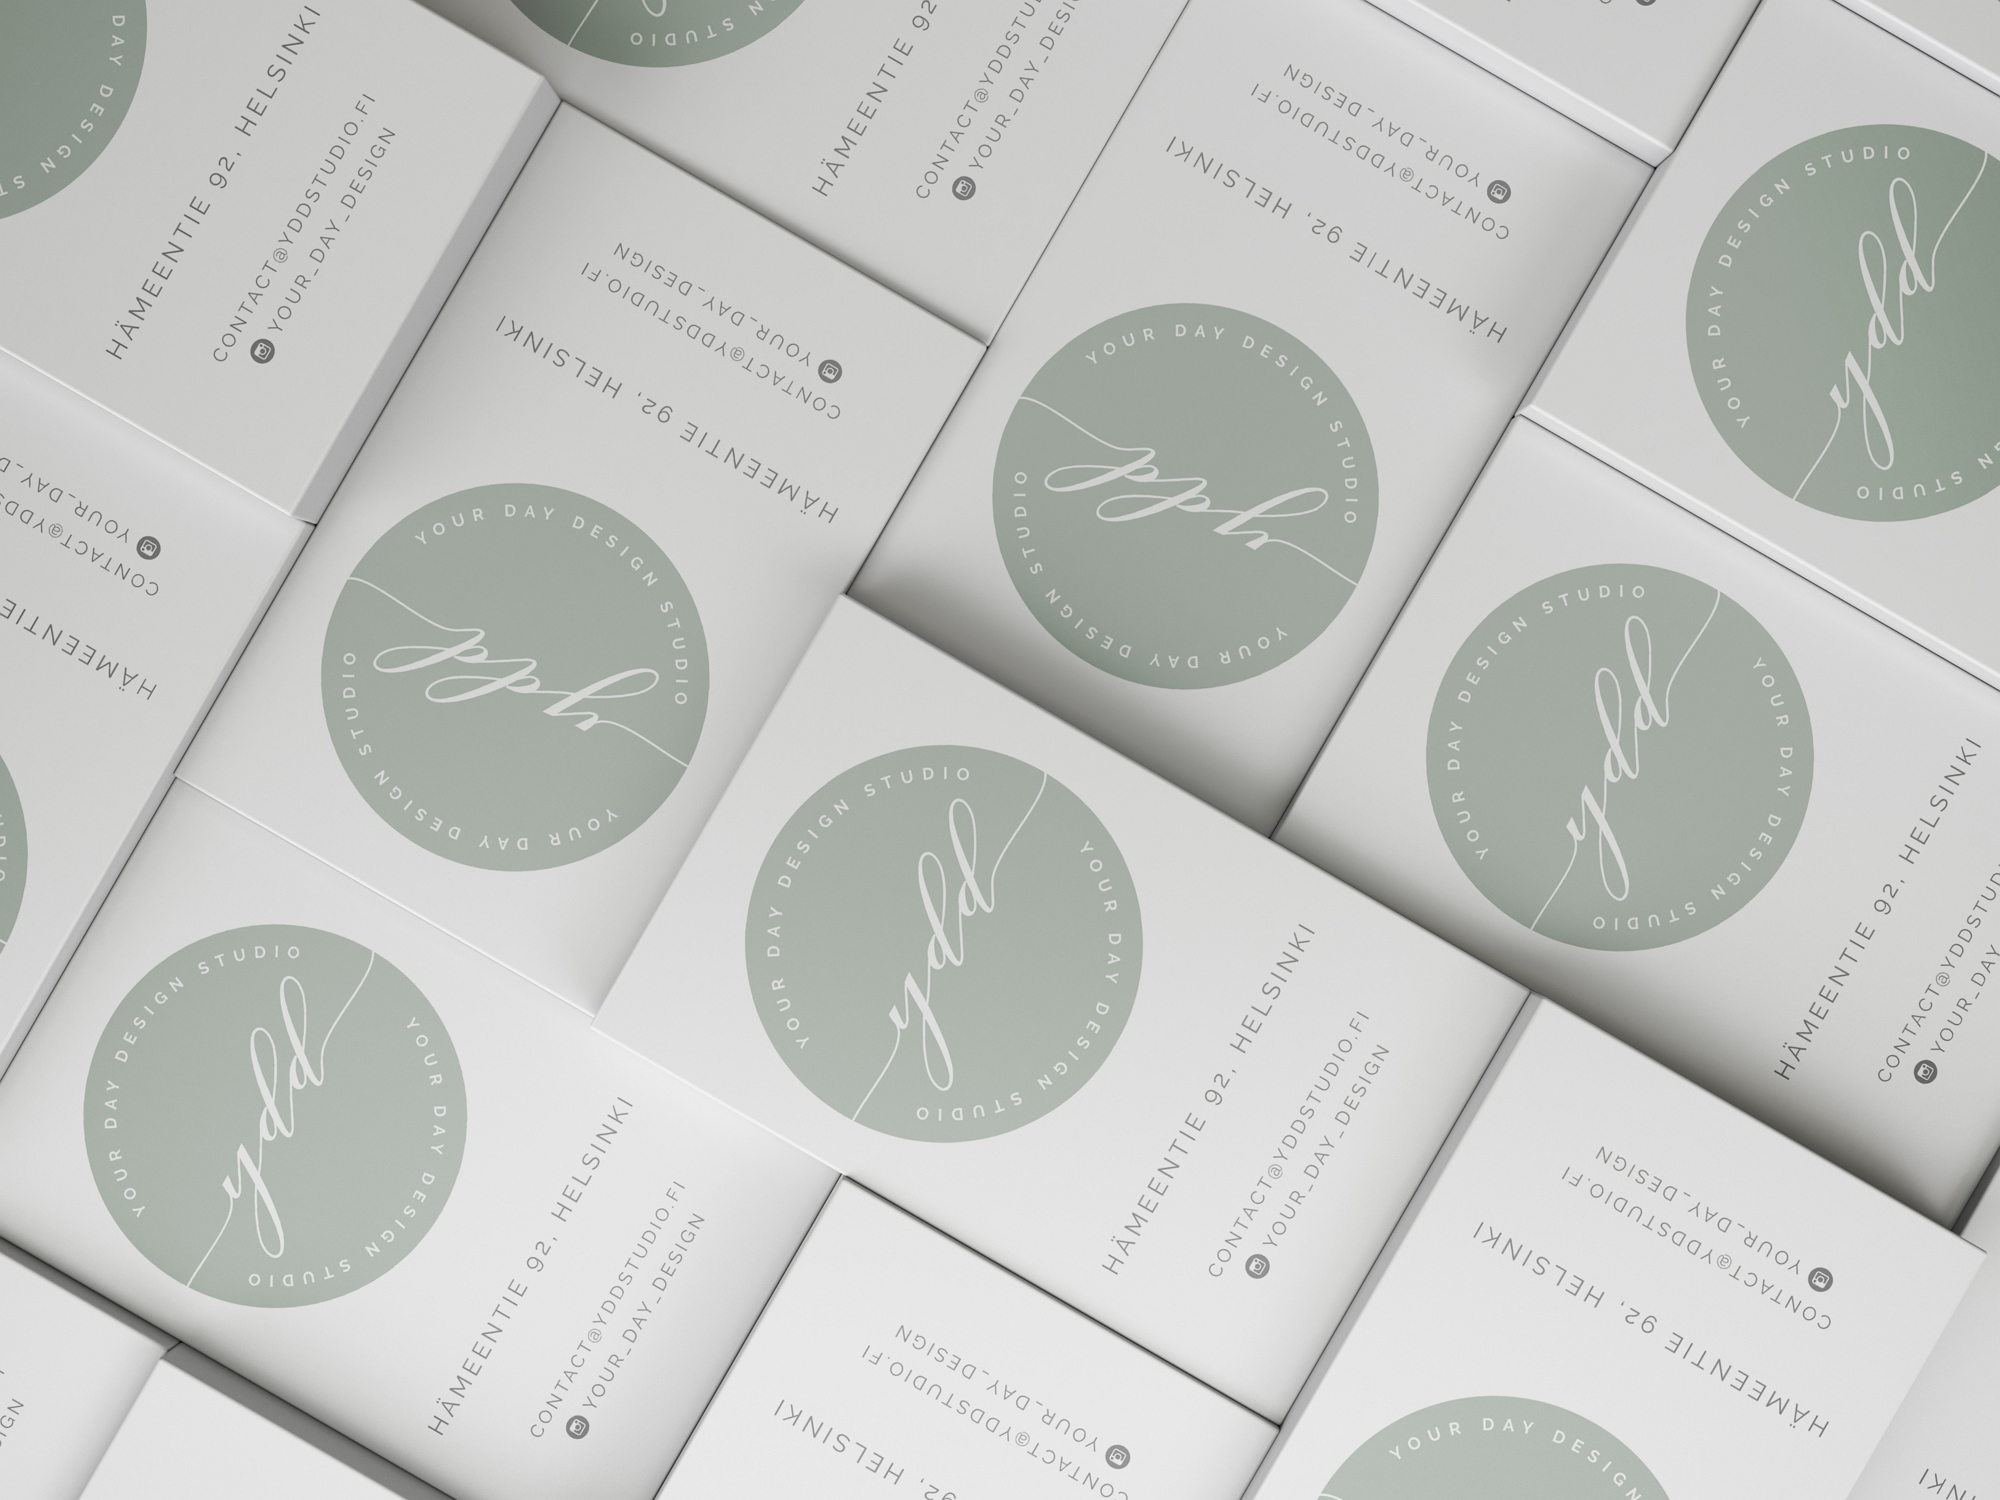 wedding styling company rebranding logo & business card item